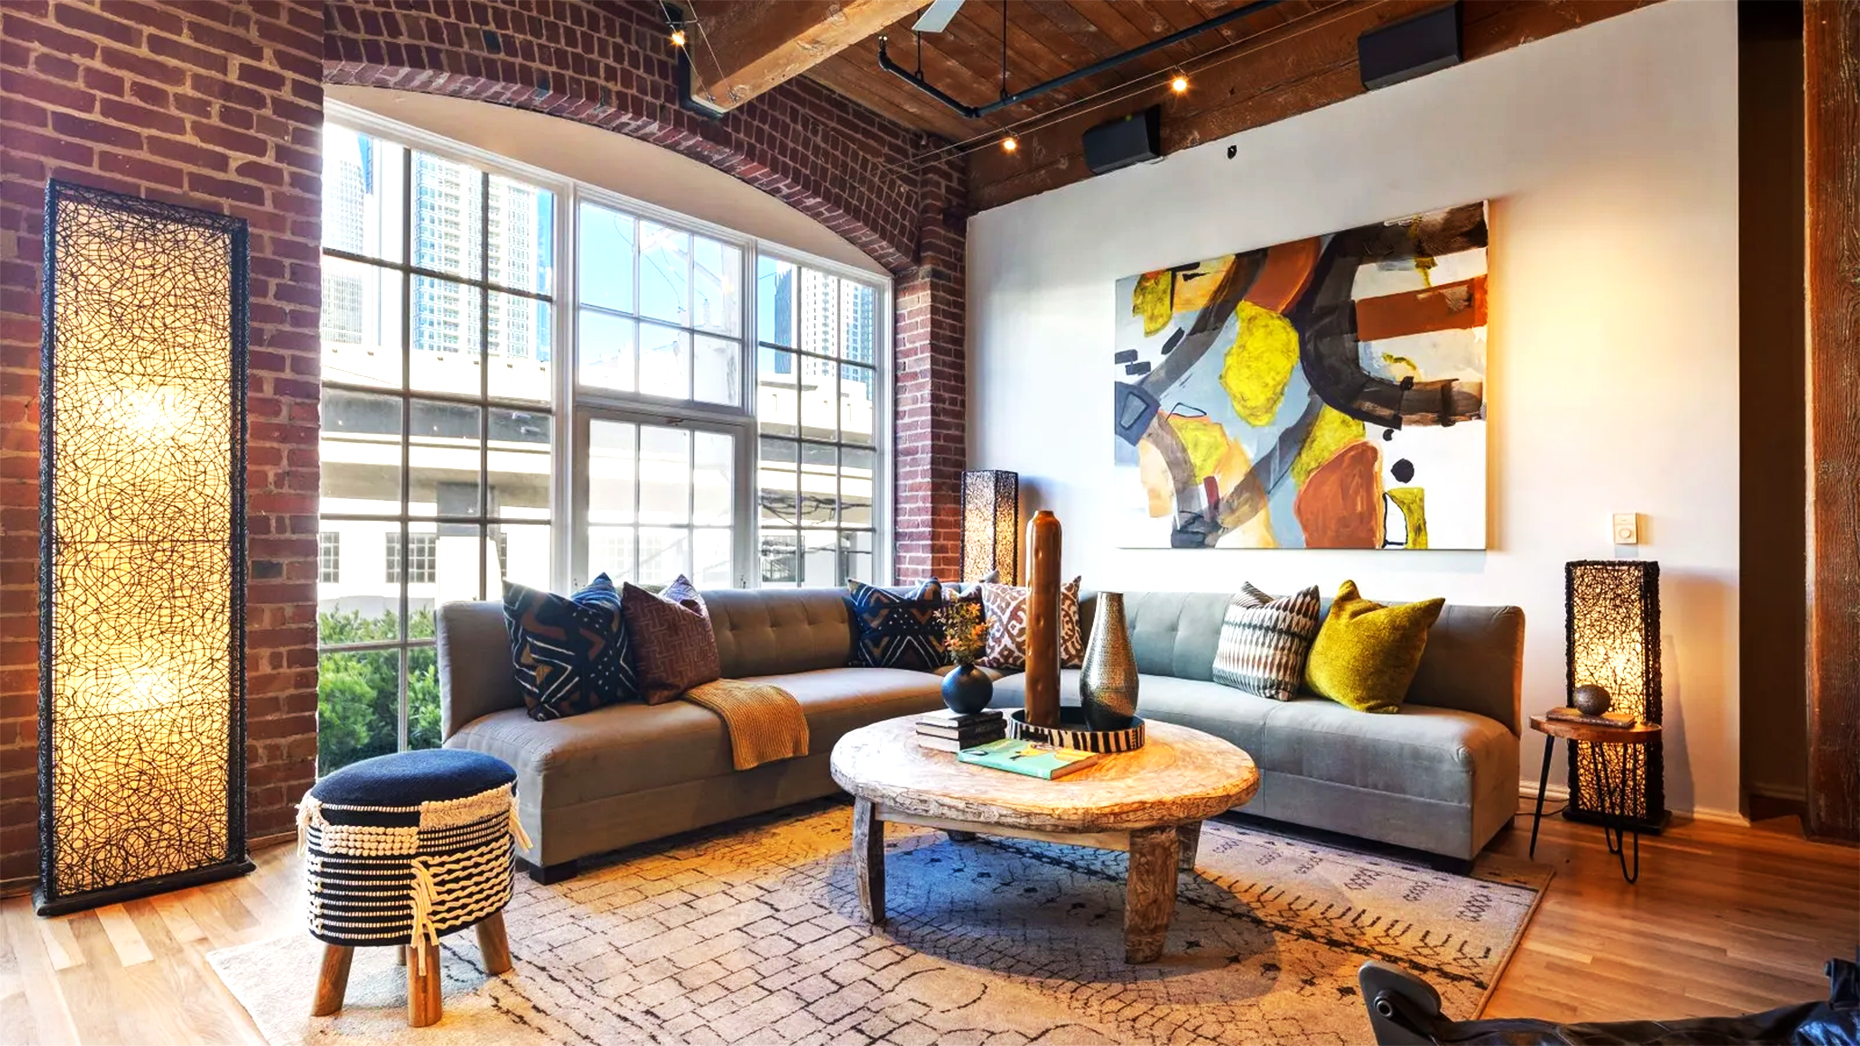 Why industrial interiors are making waves with buyers